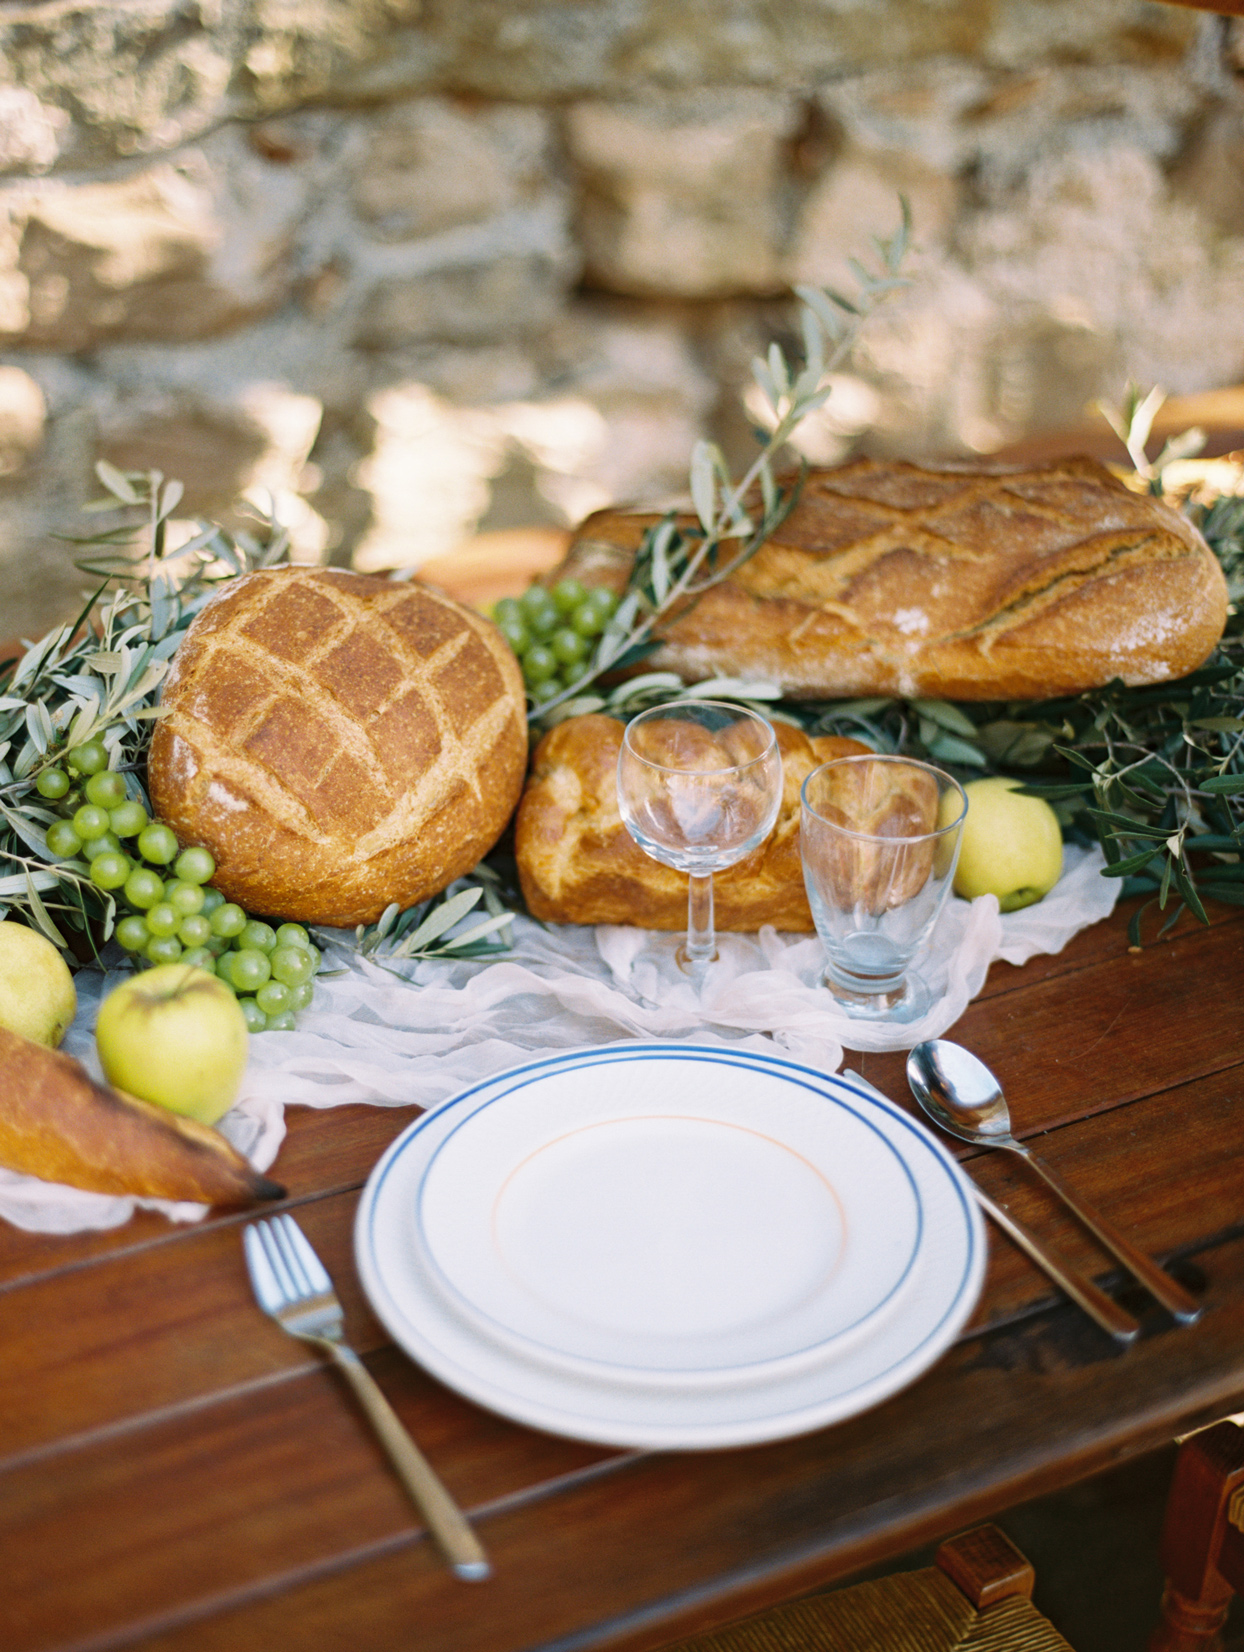 wedding reception tablescape adorned with bread fruit and olive branches